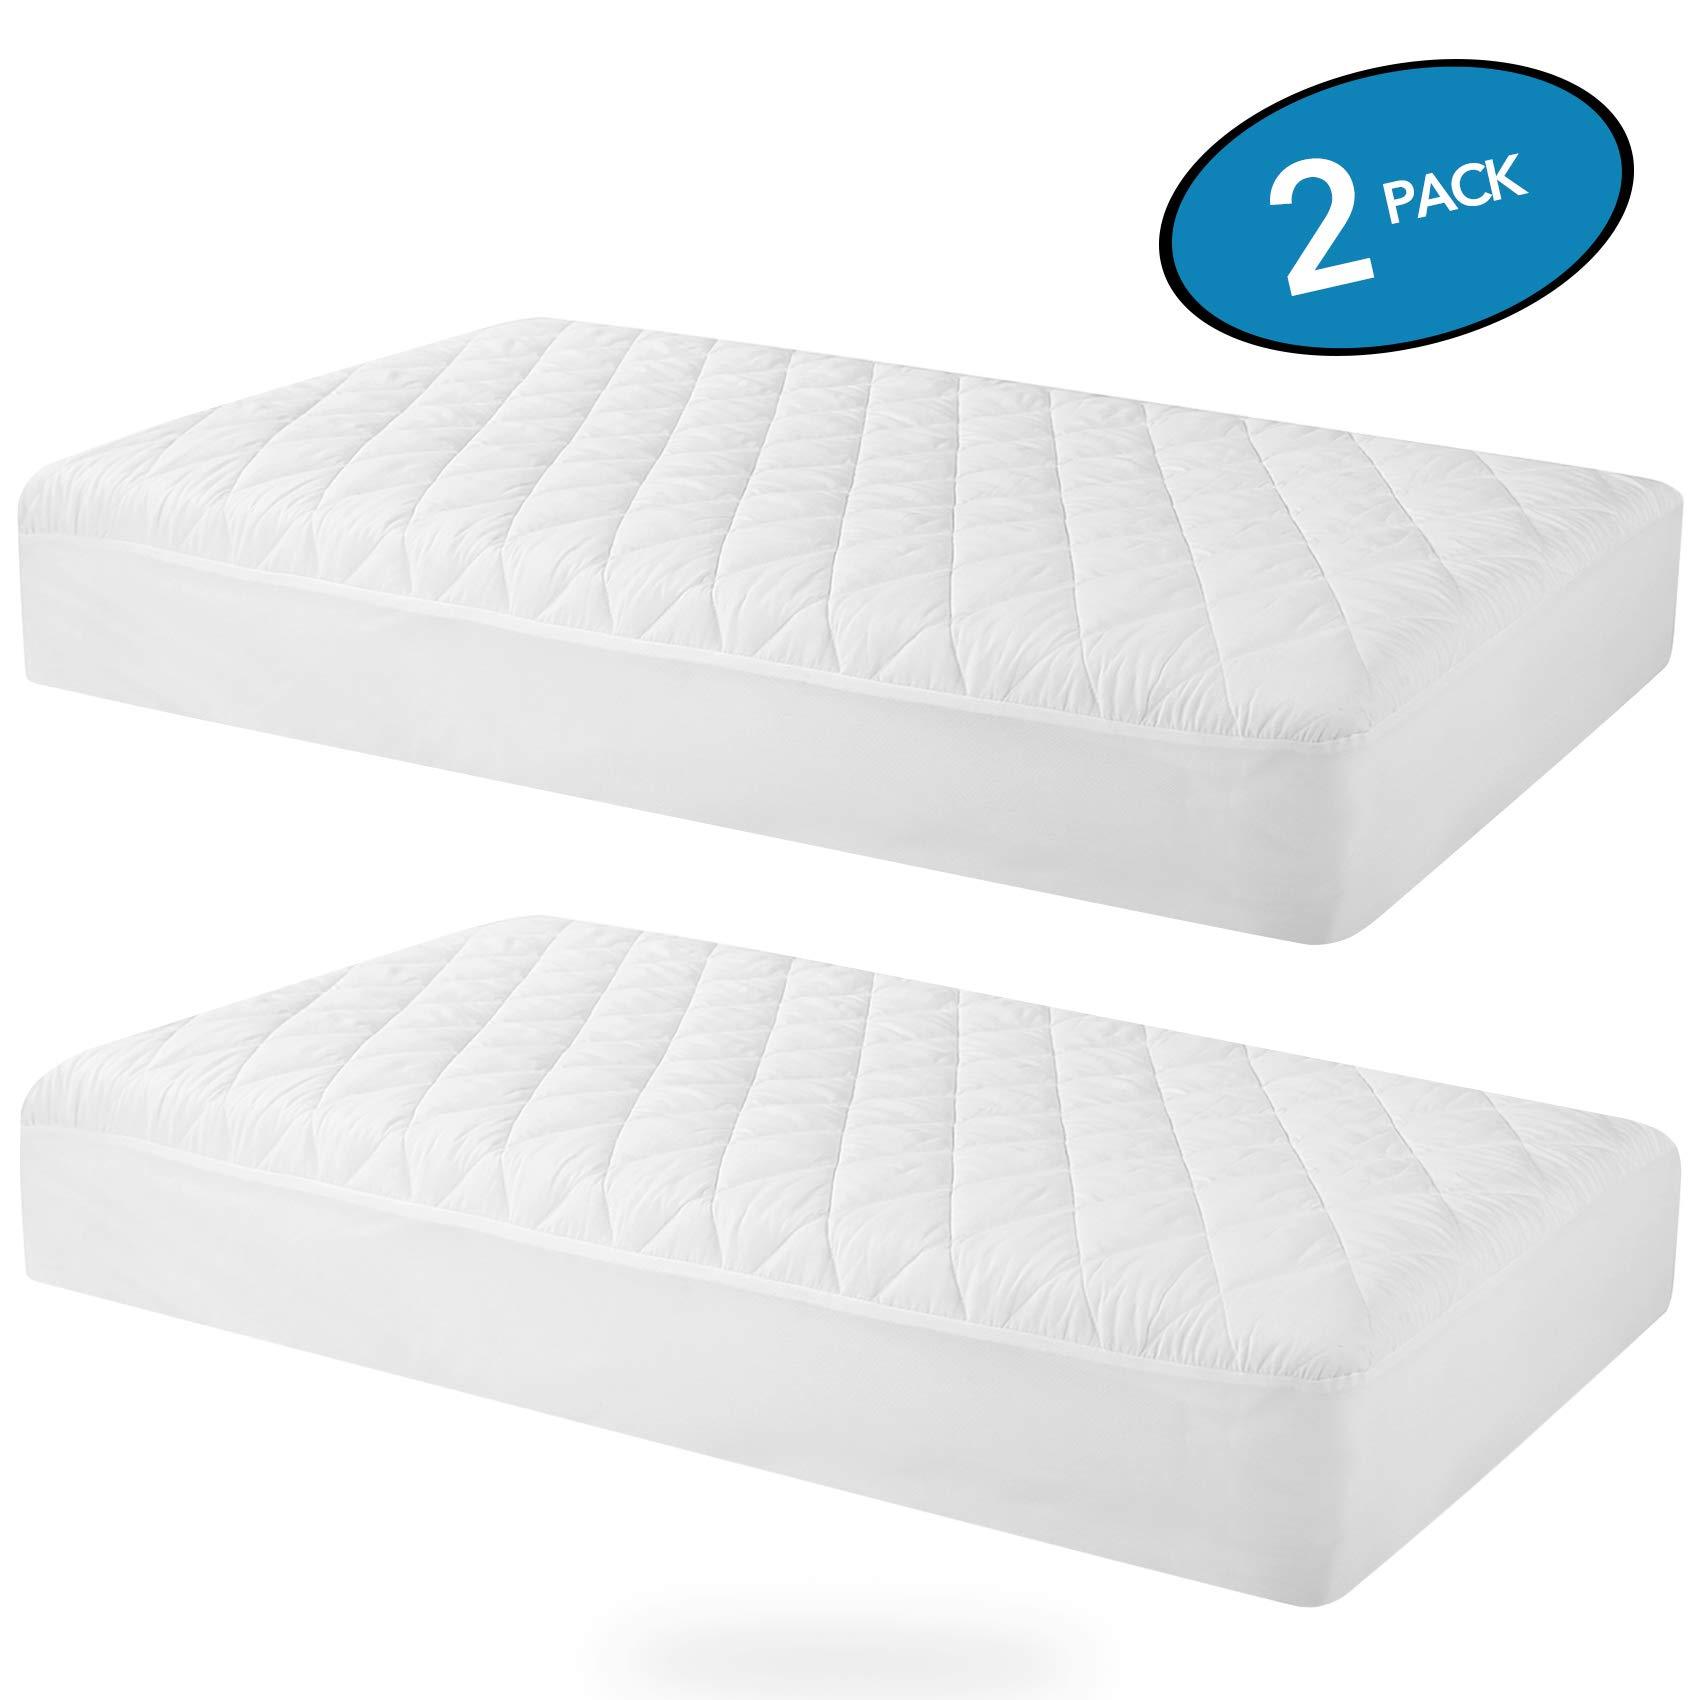 MoMA Waterproof Crib Mattress Cover (Set of 2) - 52''x 28'' White Crib Mattress Protector - Soft Fitted Baby Crib Mattress Pad with 9-inch Pocket - Hypoallergenic Polyester Toddler Mattress Pad by MoMA